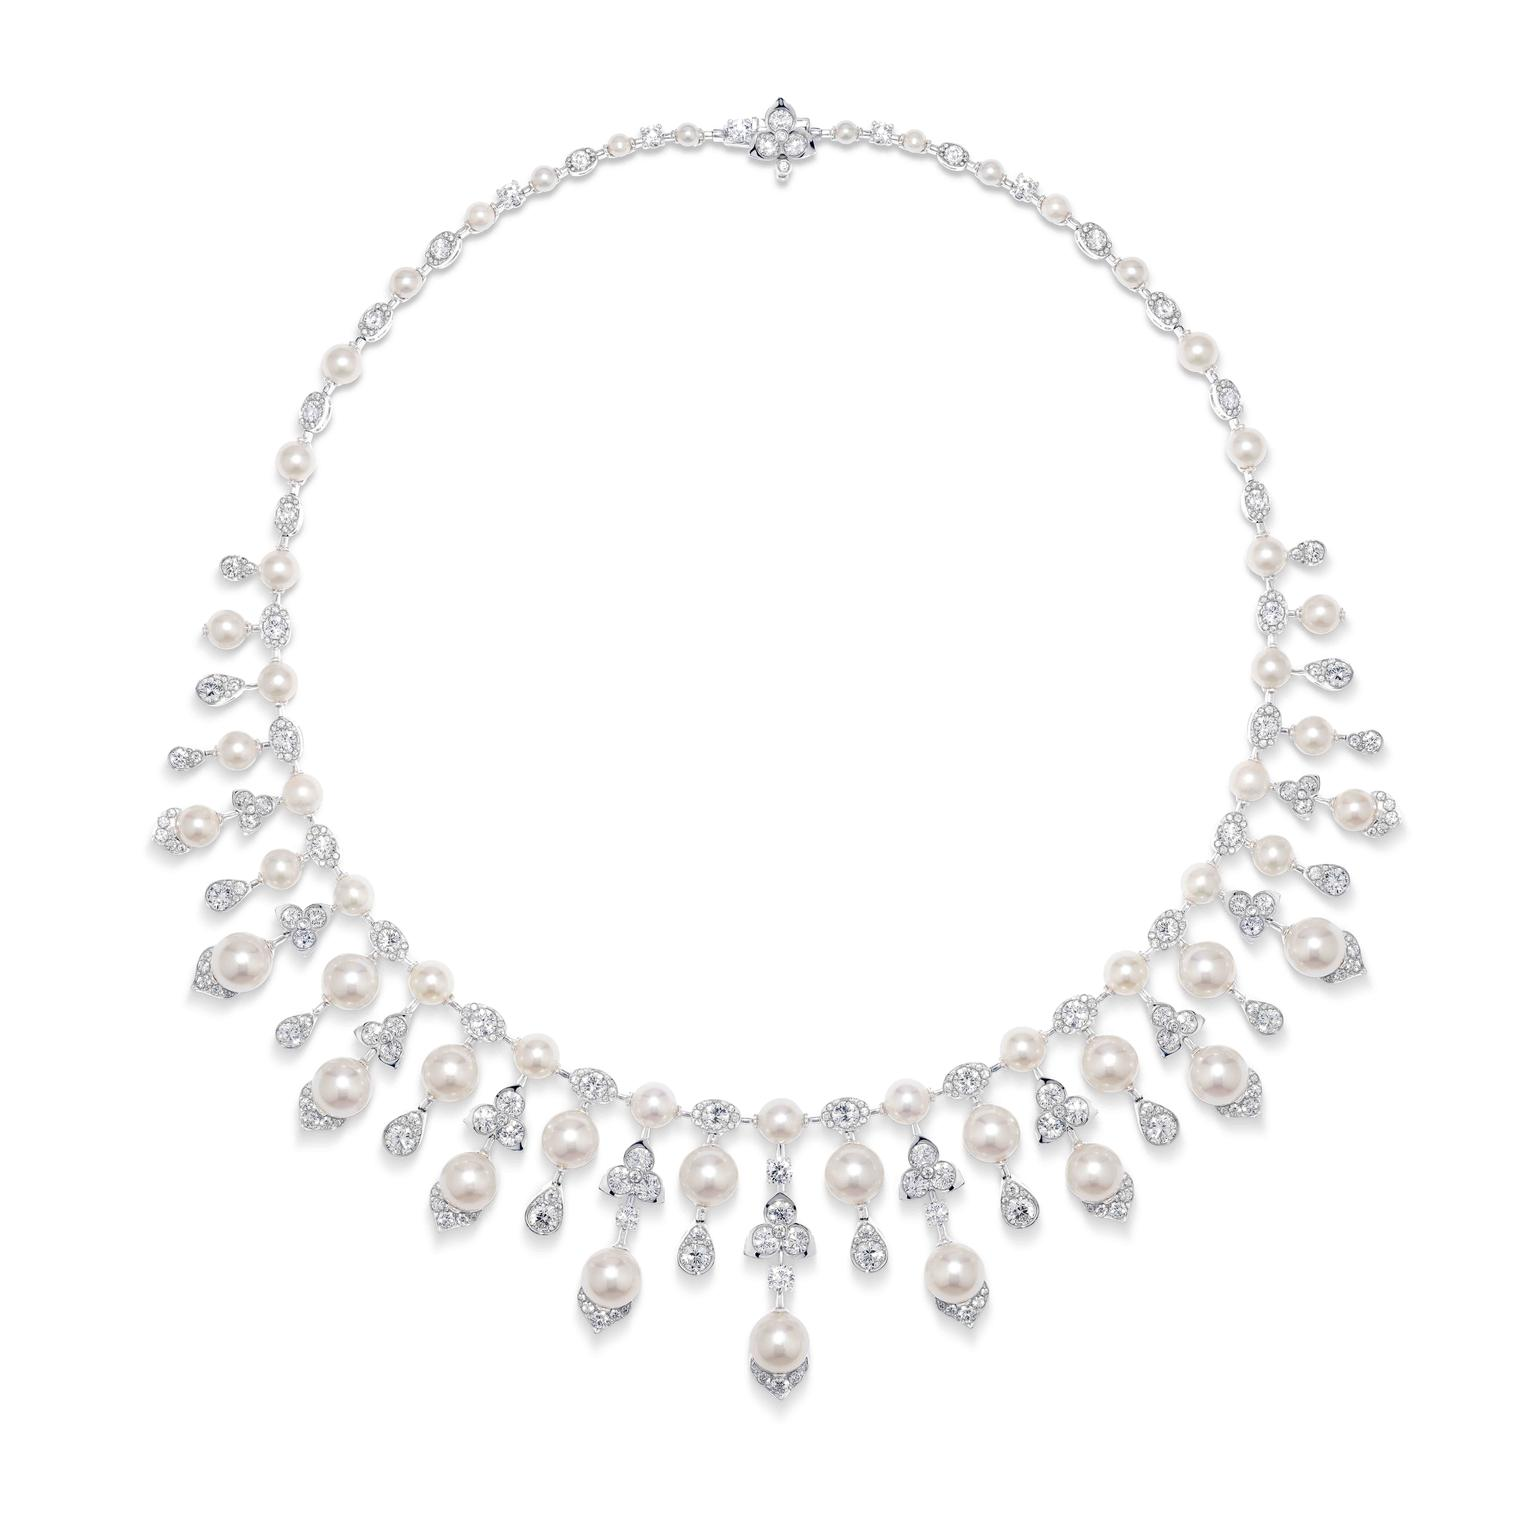 Purity necklace by David Morris